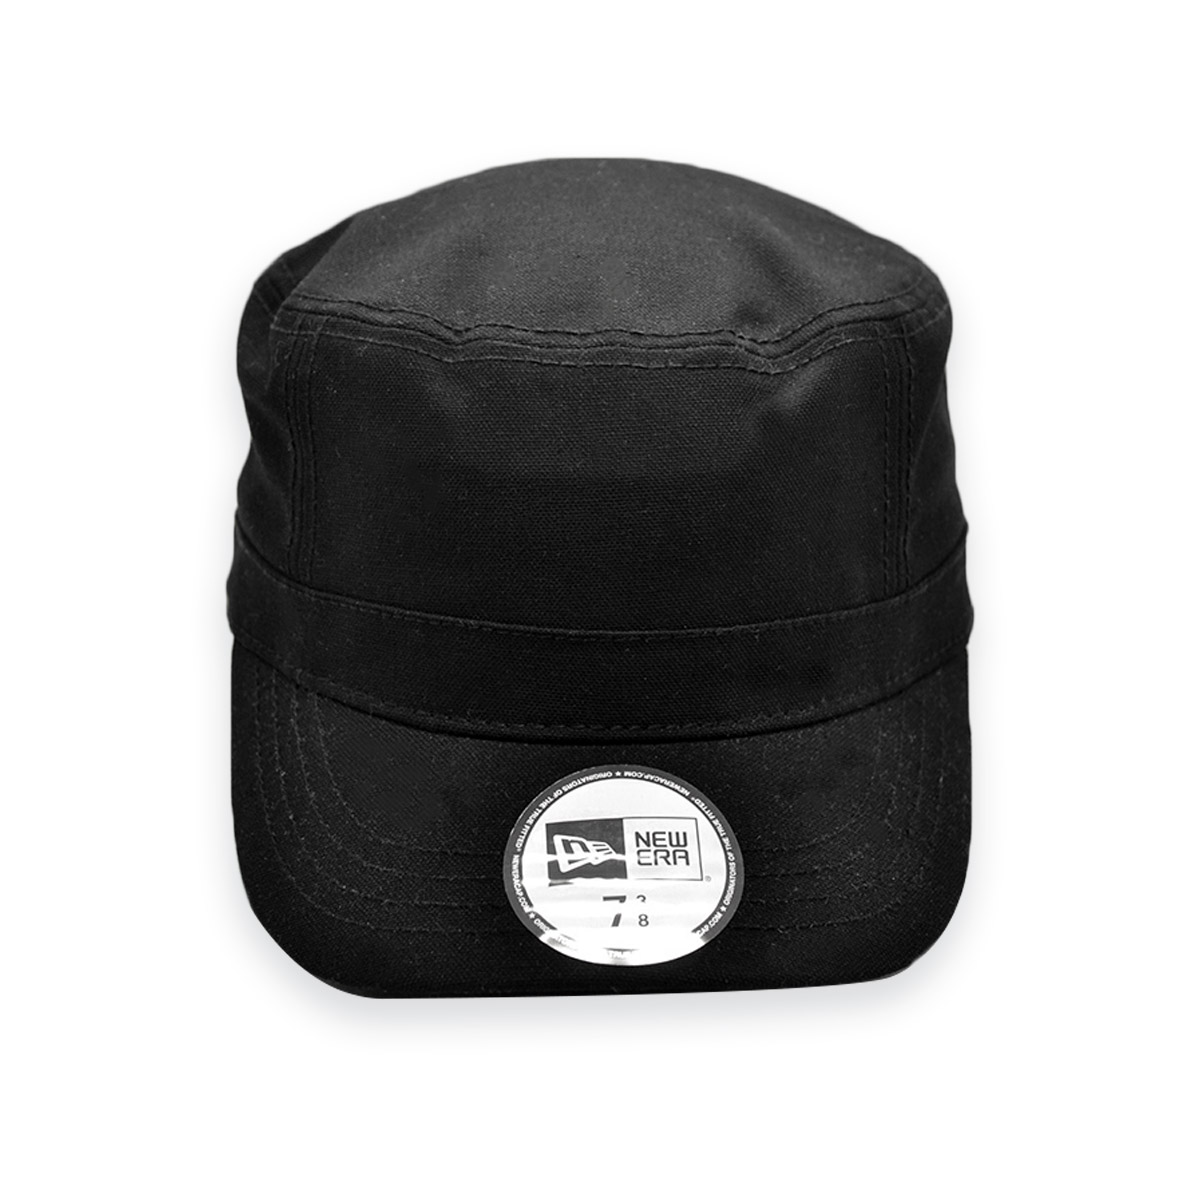 NEW ERA BLANK BLACK ARMY STYLE FITTED CURVED BRIM CAP HAT ...